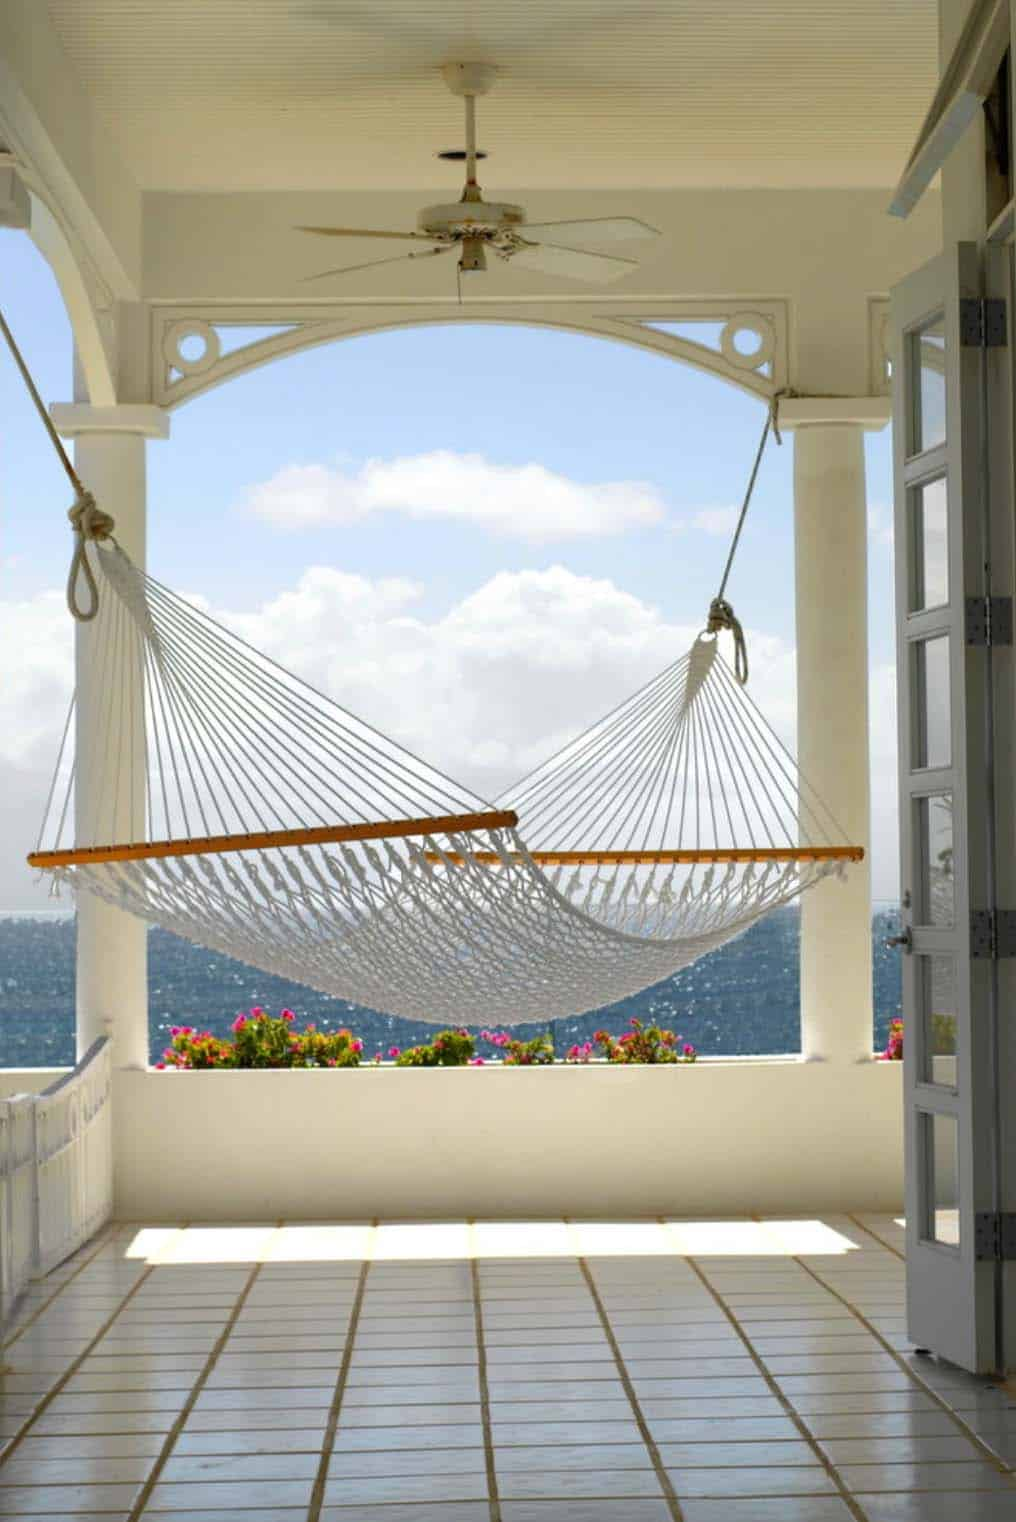 Heavenly Outdoor Hammock Ideas-15-1 Kindesign